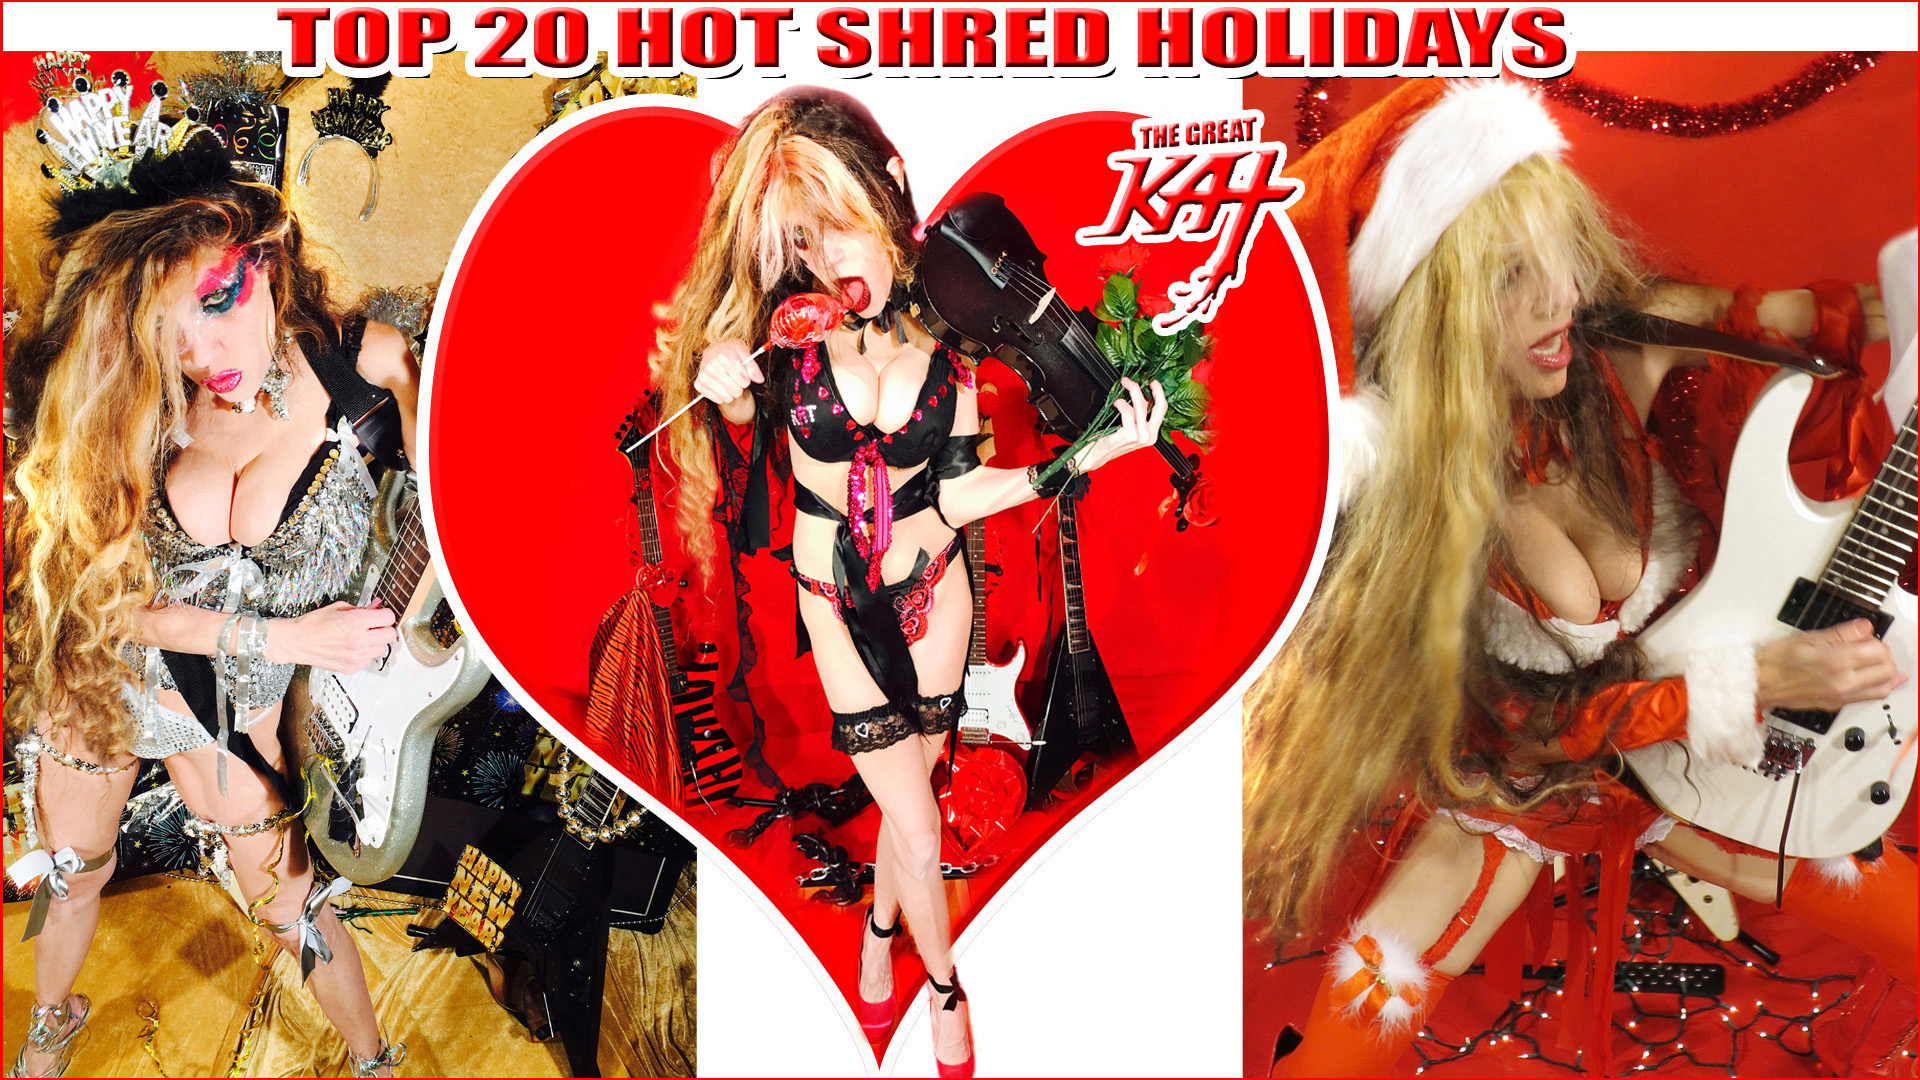 "THE GREAT KAT'S ""TOP 20 HOT SHRED HOLIDAYS!"" From The Great Kat's NEW DVD!!!!"